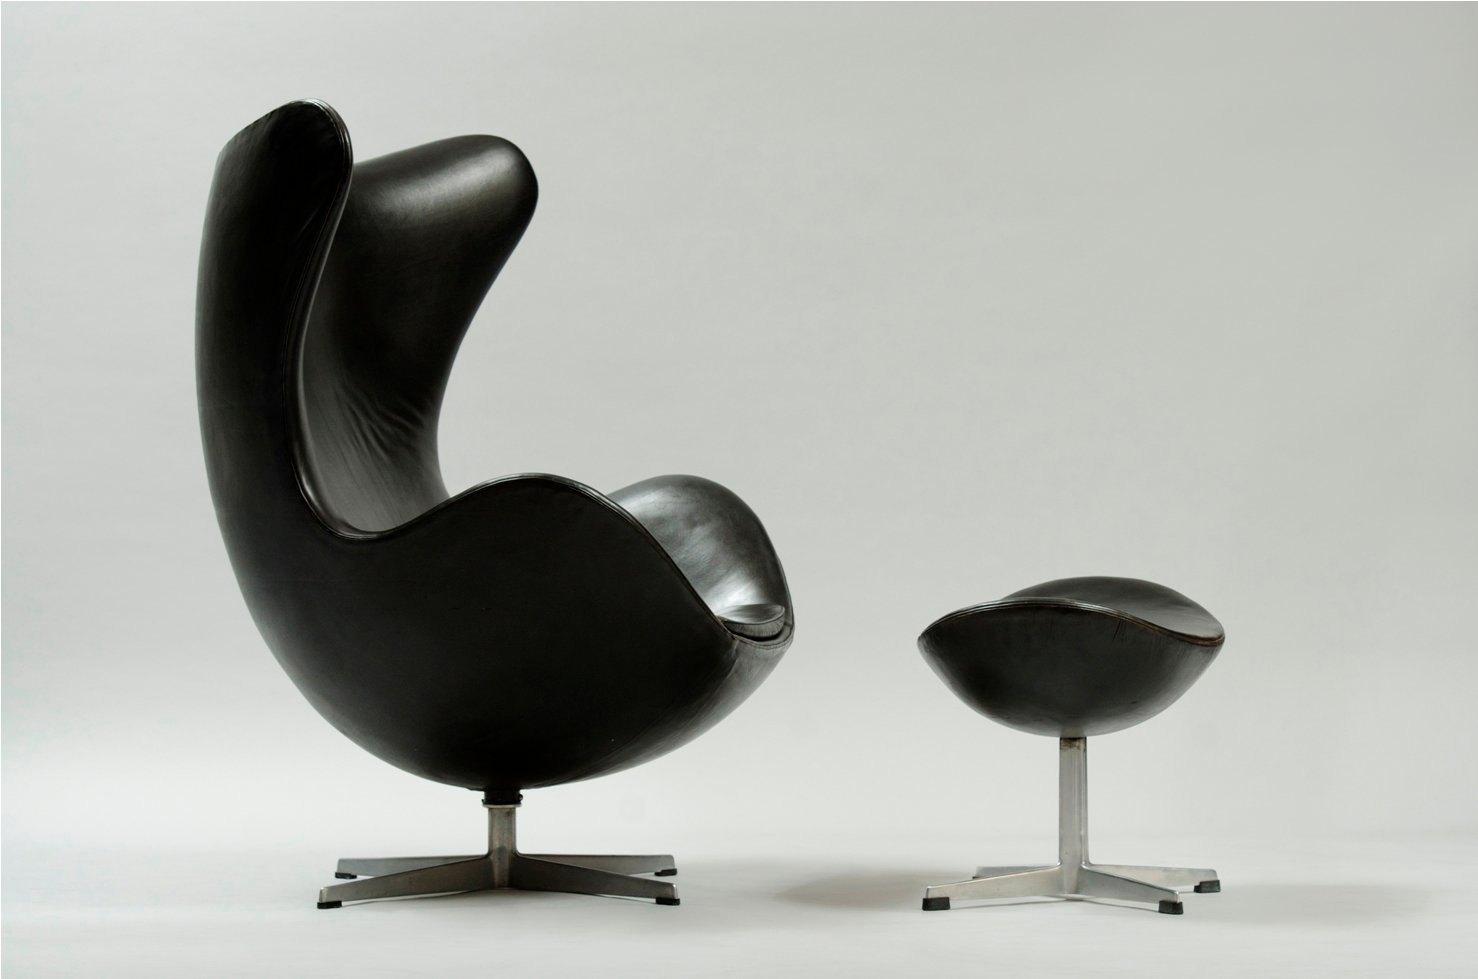 egg chair und ottoman von arne jacobsen f r fritz hansen bei pamono kaufen. Black Bedroom Furniture Sets. Home Design Ideas